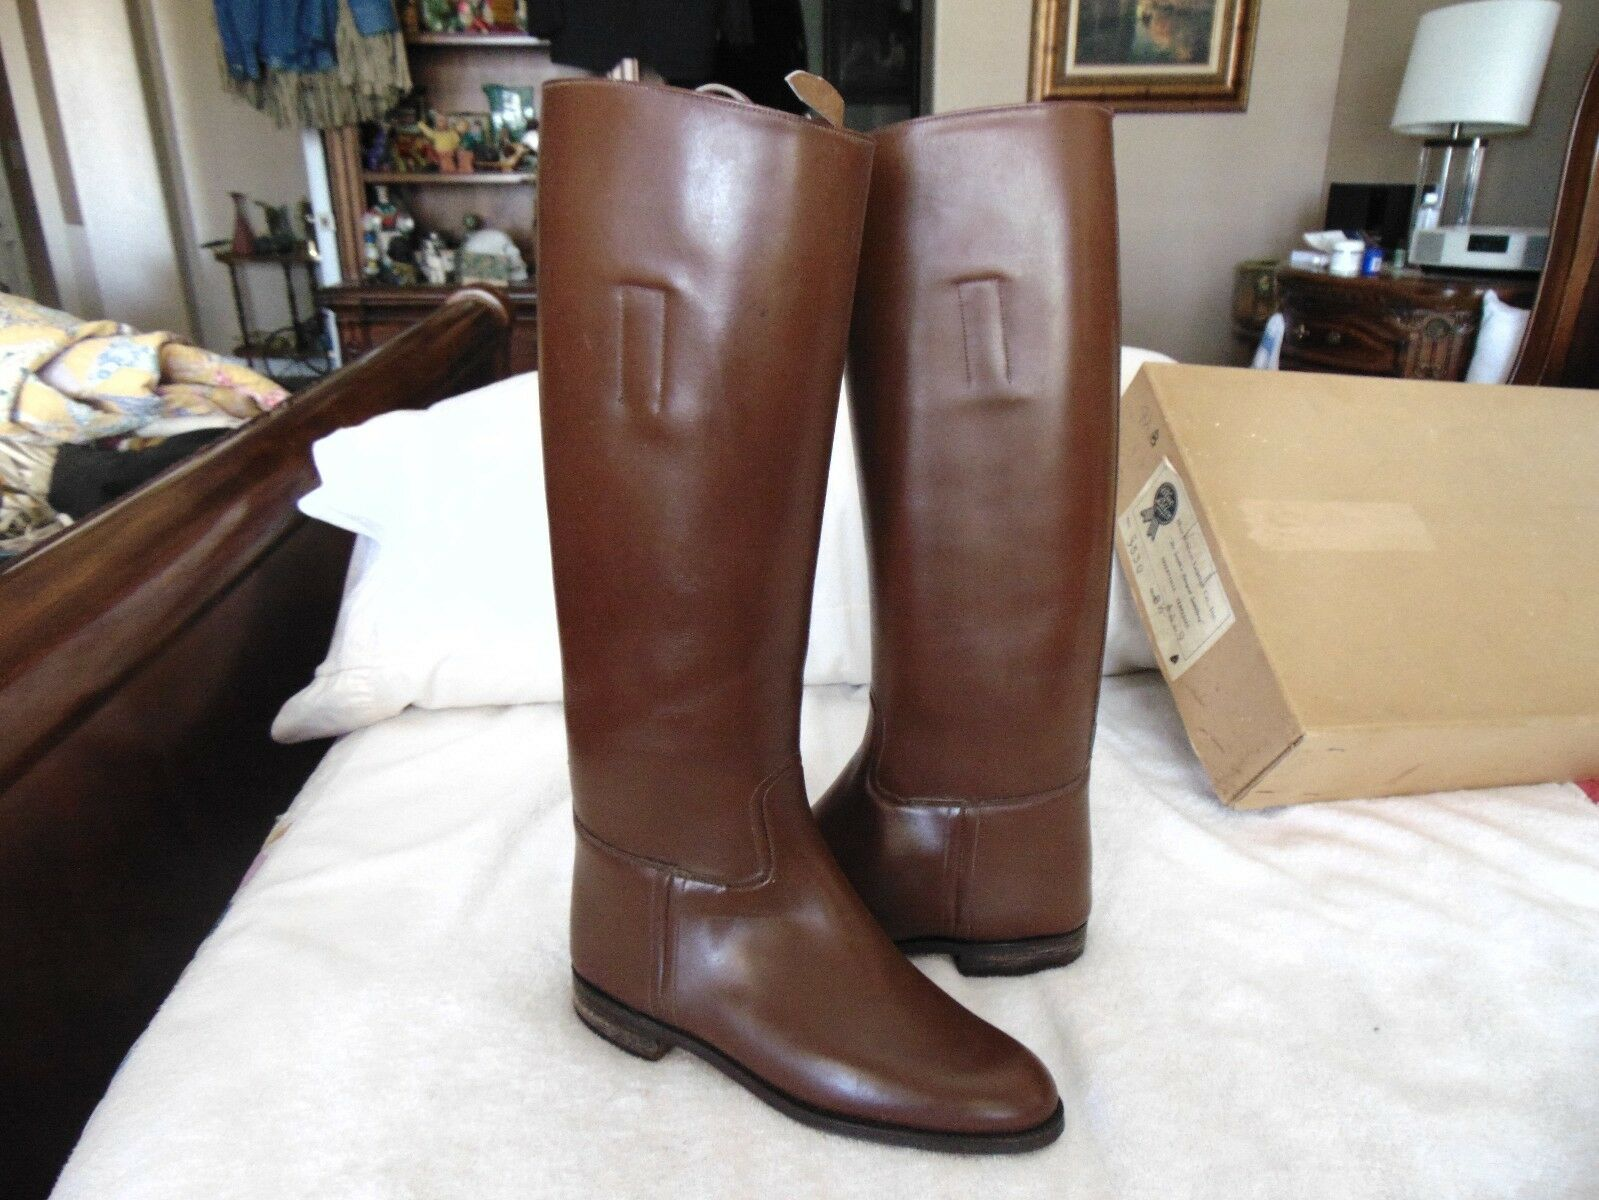 New Old Stock 1960's English Equestrian Horse Riding Boots   bluee Ribbon 8.5 Box